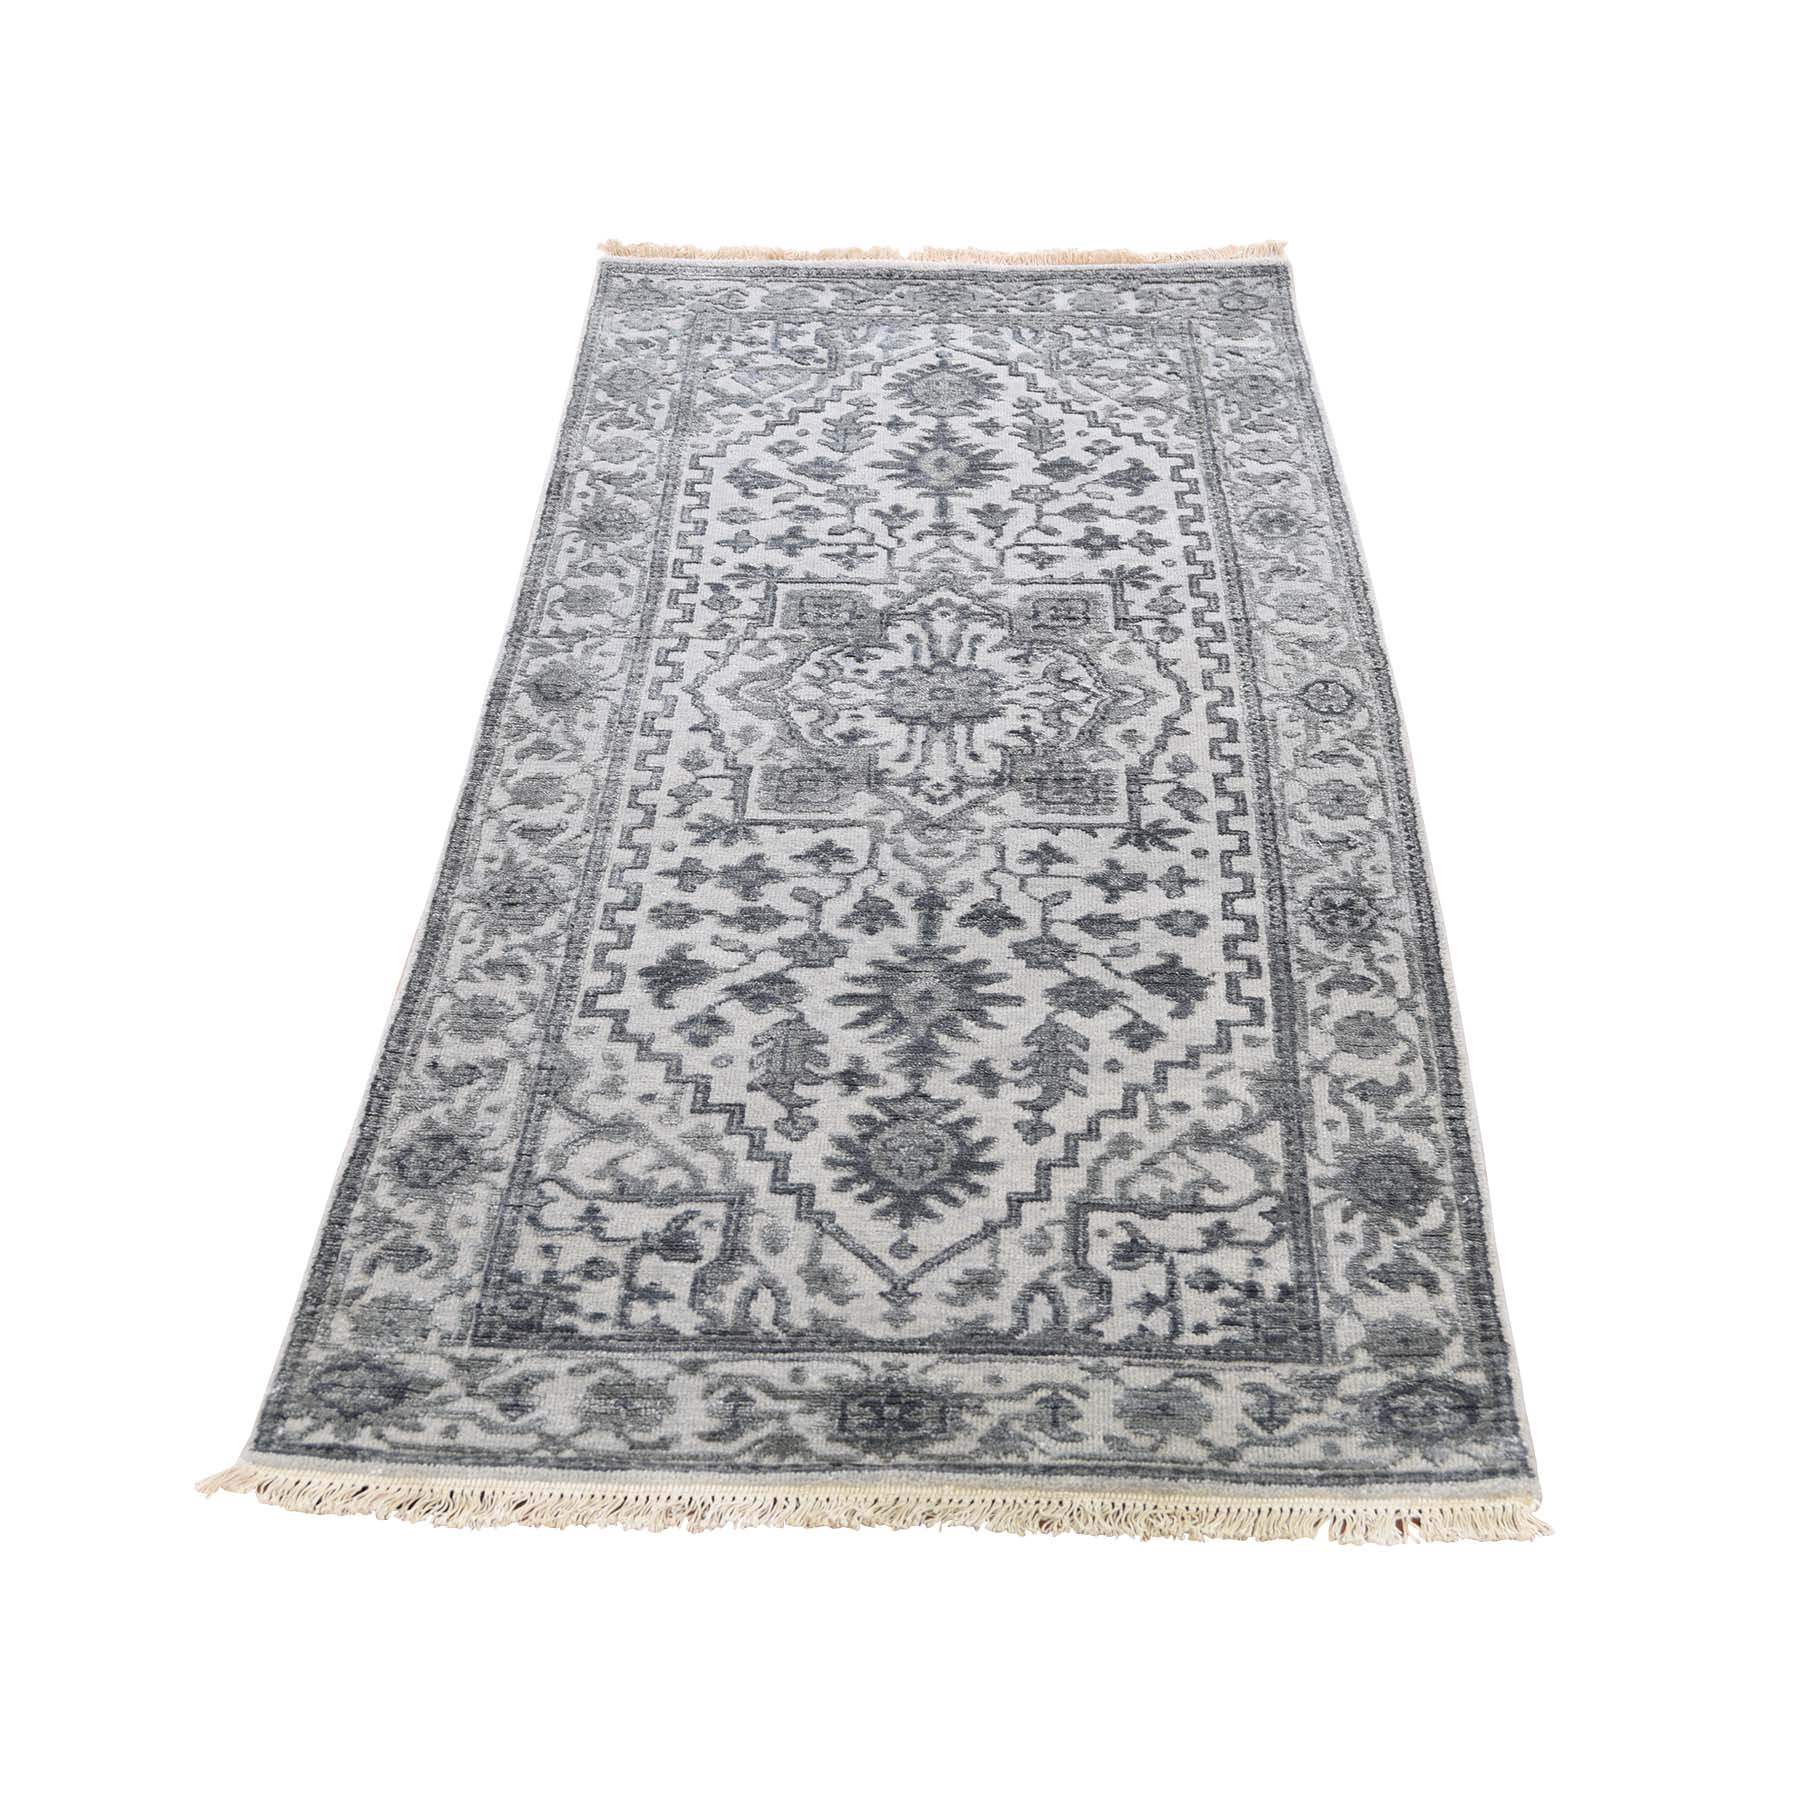 "2'6""X6' Silver Heriz Design Wool And Silk Hi-Lo Pile Short Runner Hand-Knotted Oriental Rug moadd900"